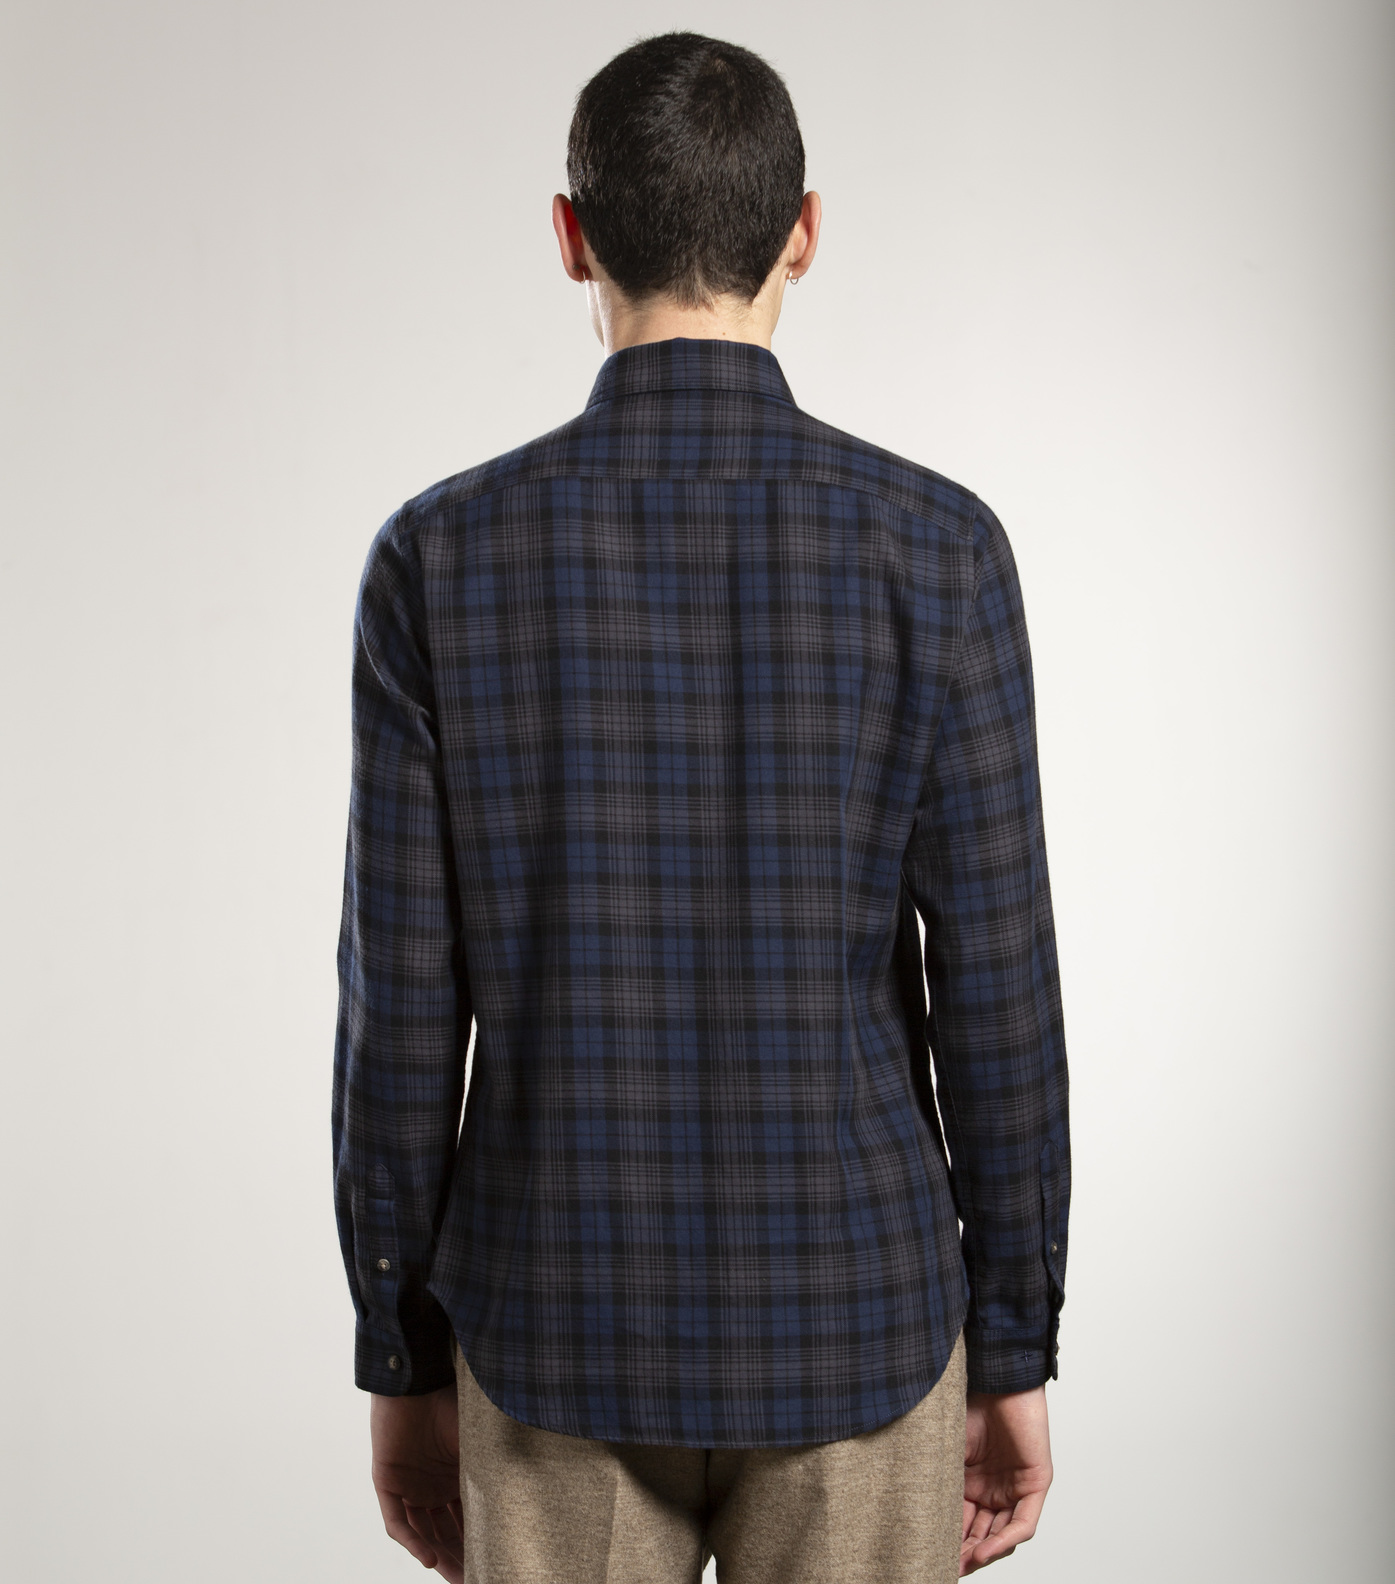 SHIRT ROSSEL - Blue checks